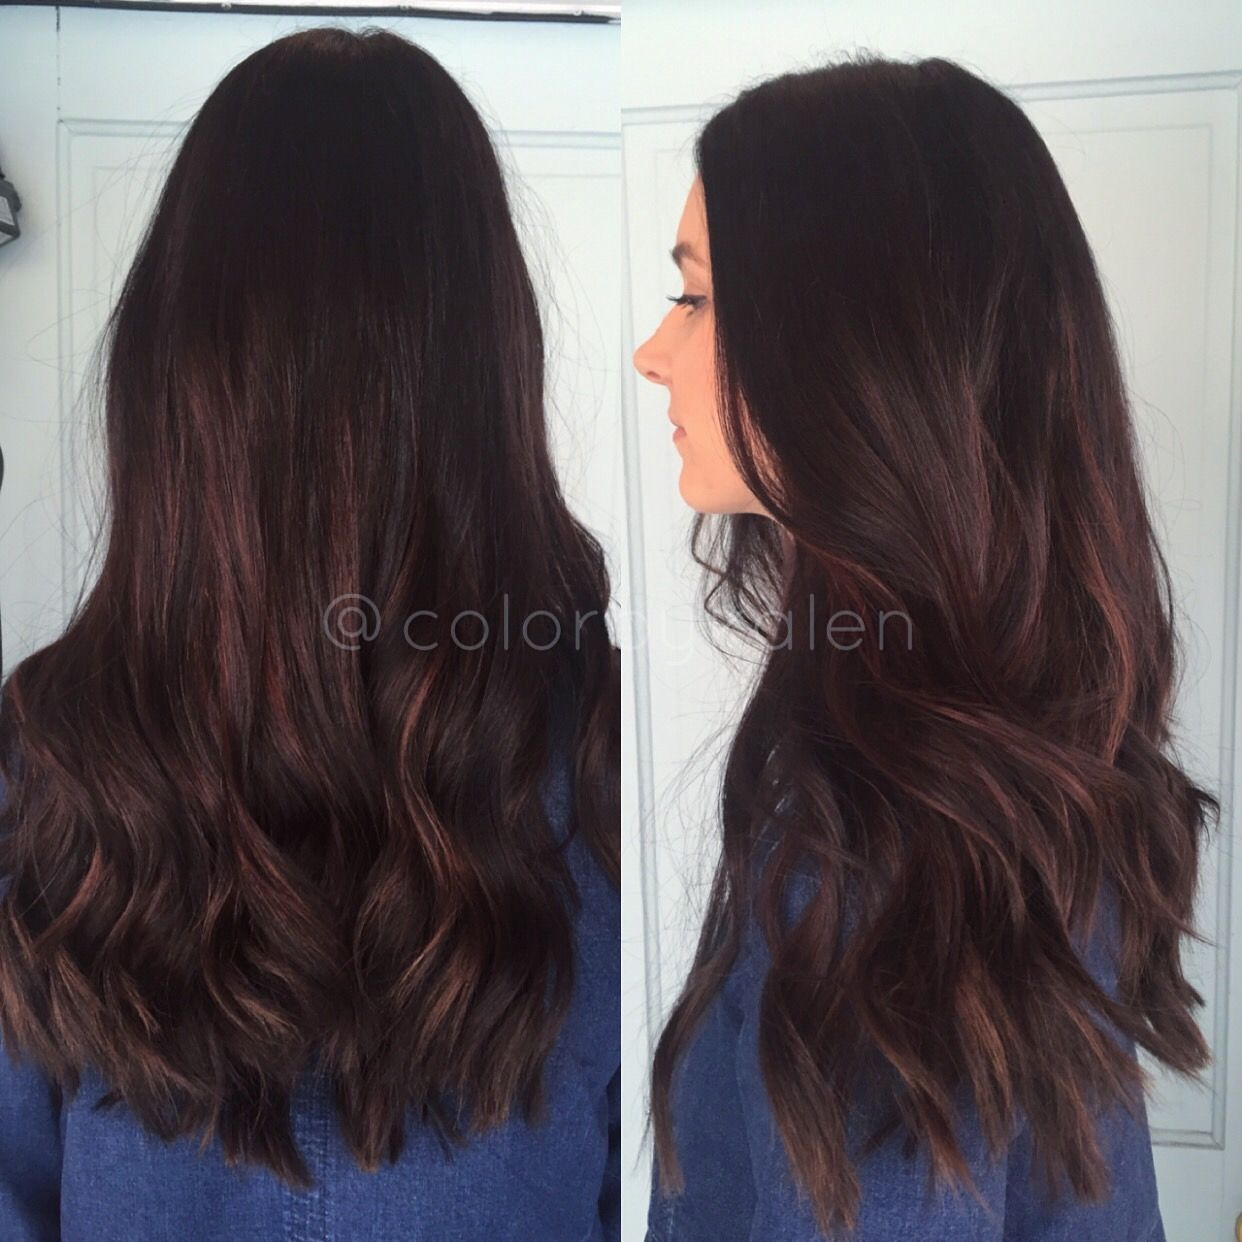 Dark brown hair with burgundy red highlights balayaged in style